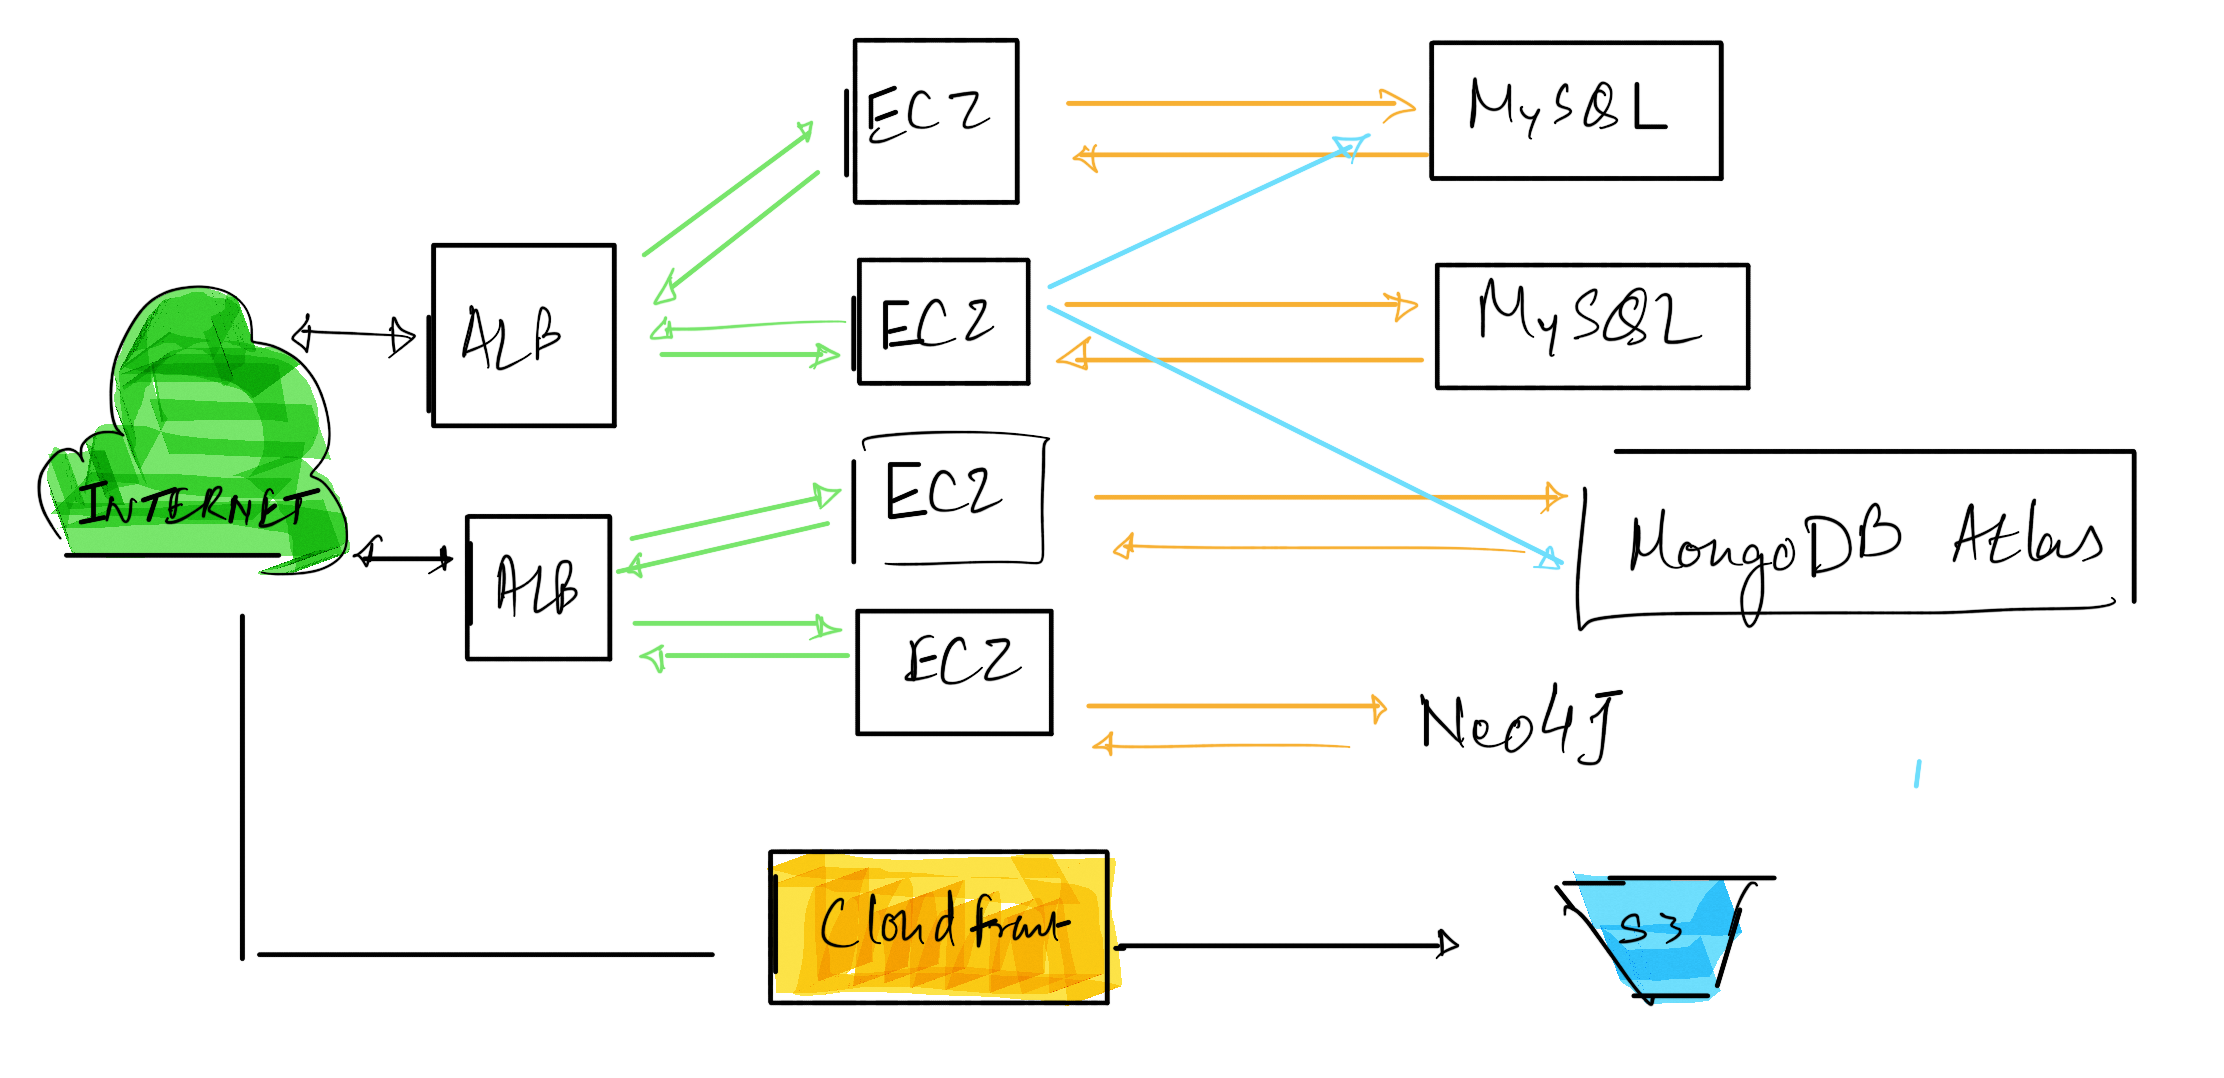 The simplified version of the initial architecture